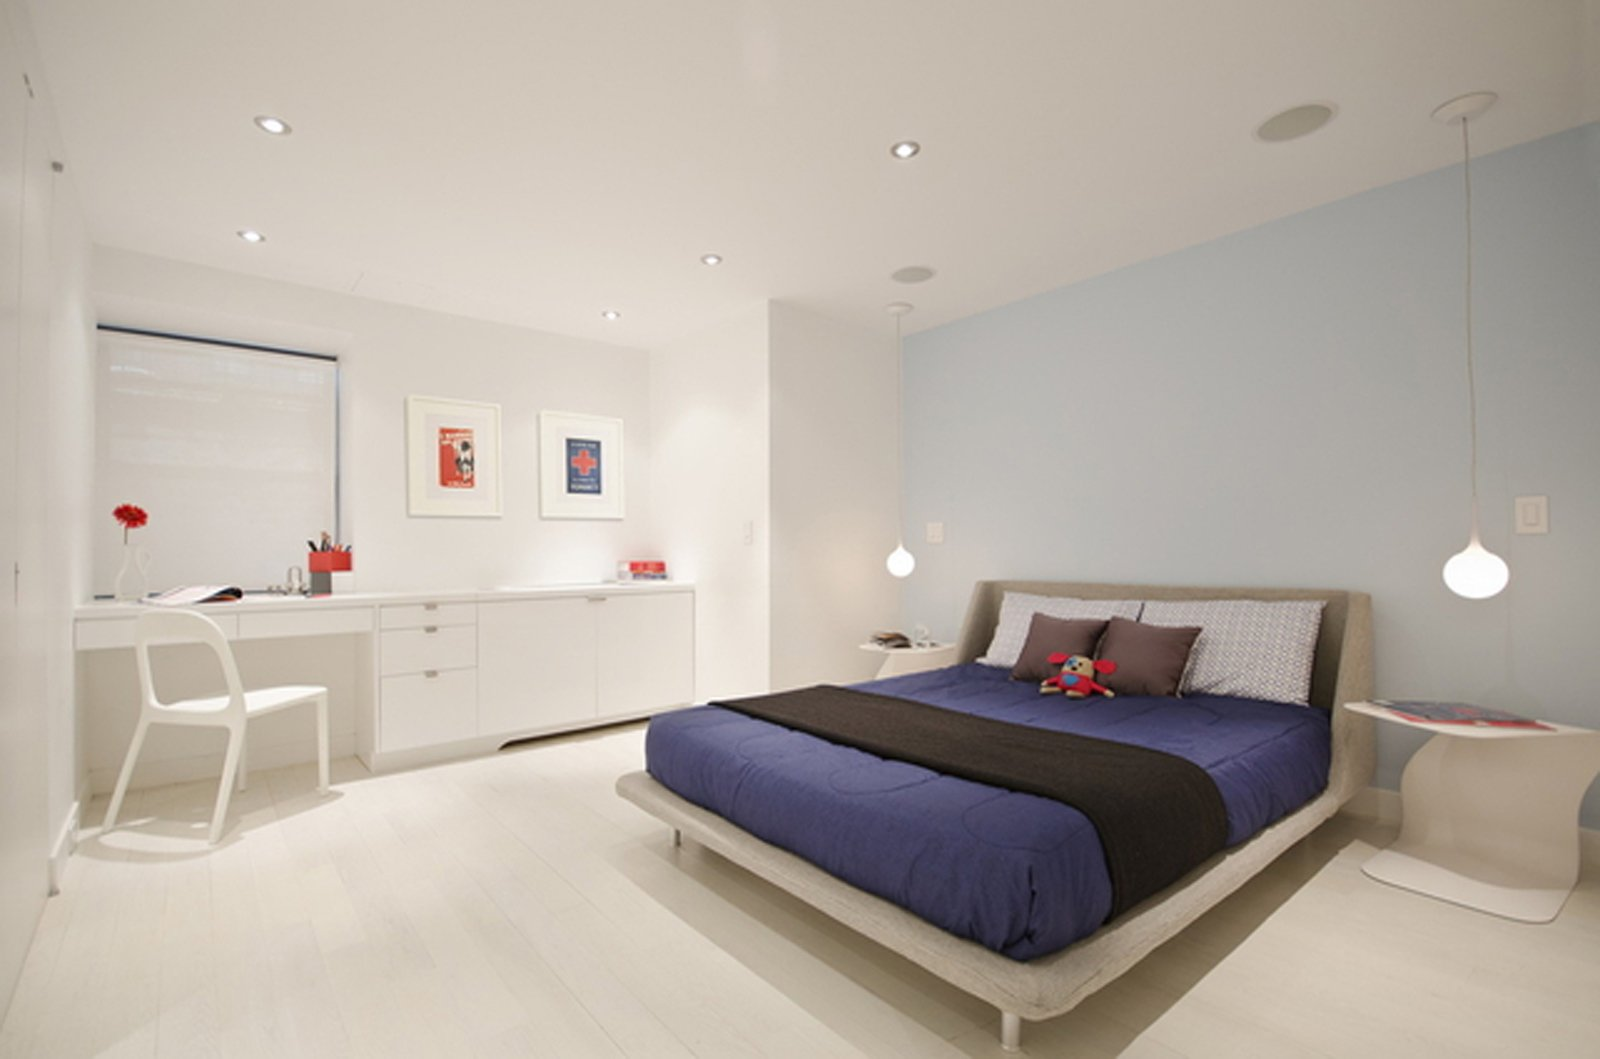 Here's the master bedroom on the lower level. The bed is from Blu Dot and the side table is by Mario Mazzer from Property Furniture.  Blu Dot Spotted by Blu Dot from University Place Apartment